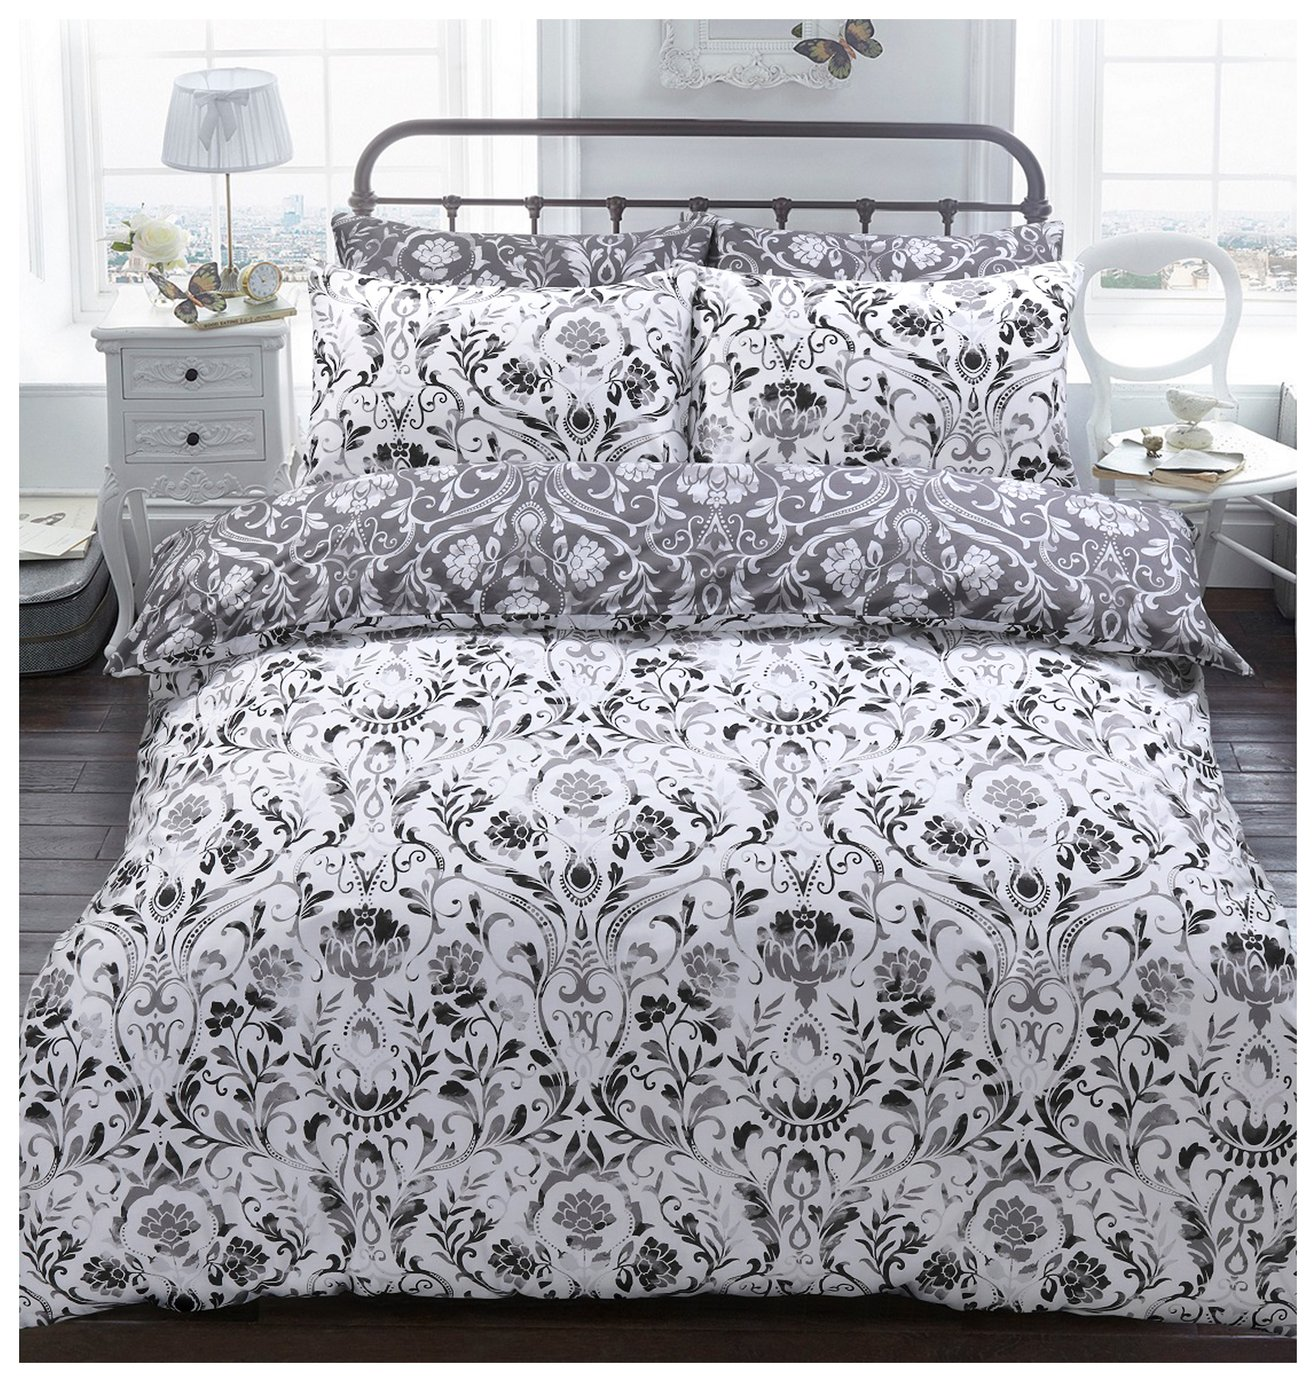 Argos Home Monochrome Painted Damask Bedding Set - Kingsize